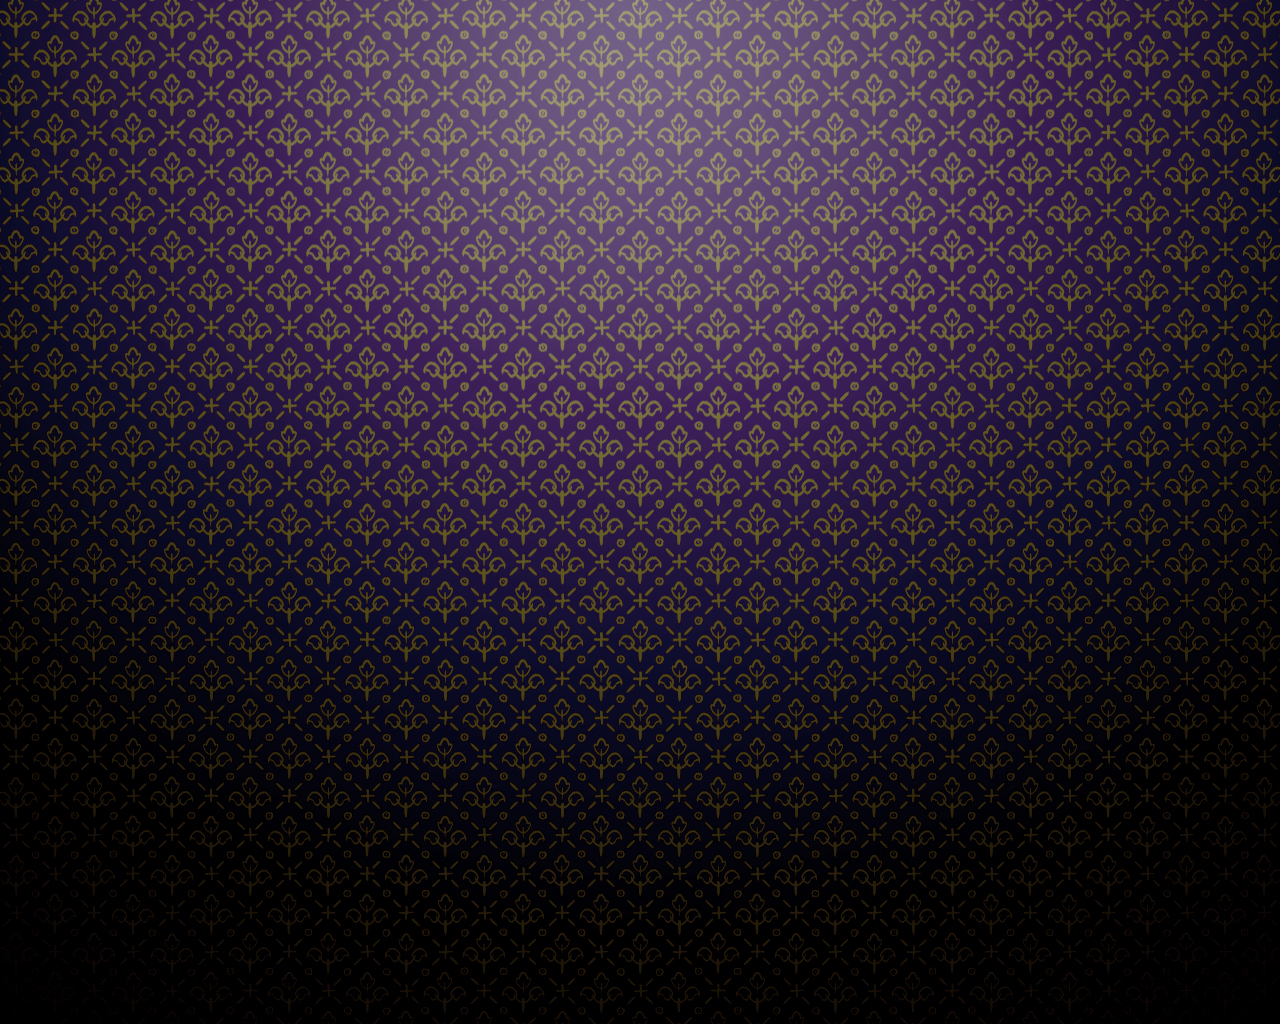 Purple and gold wallpaper 1280x1024 82334 for Expensive wallpaper